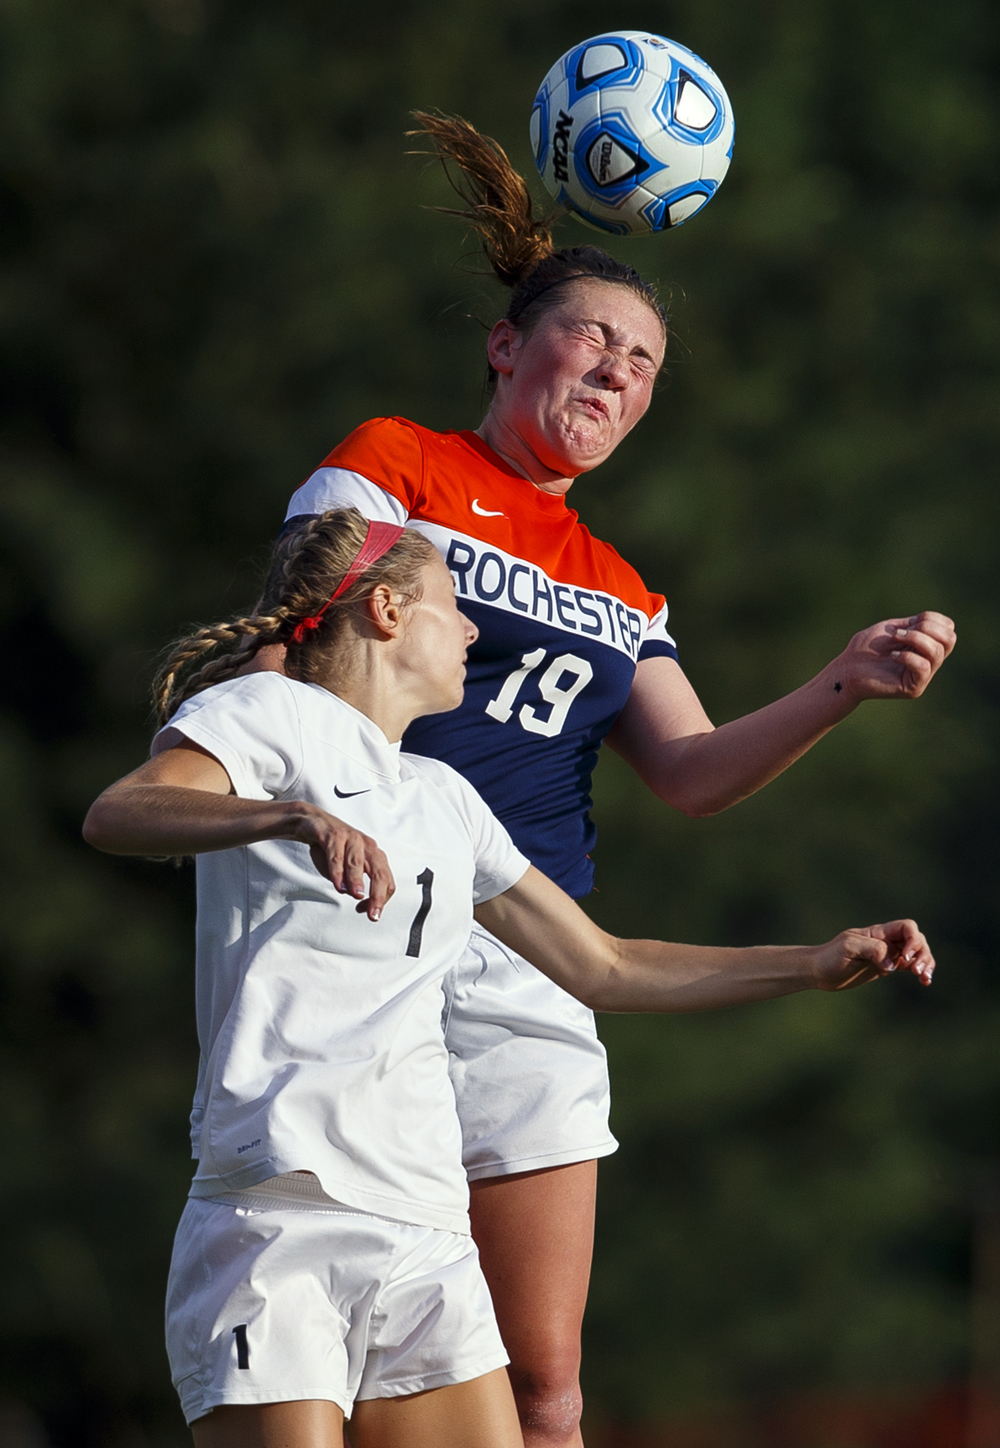 Rochester's Maddie Caps heads the ball in front of Normal West's Kate Lorenz during the Class 2A Springfield Supersectional soccer at the University of Illinois Springfield Monday, May 31, 2016. Ted Schurter/The State Journal-Register